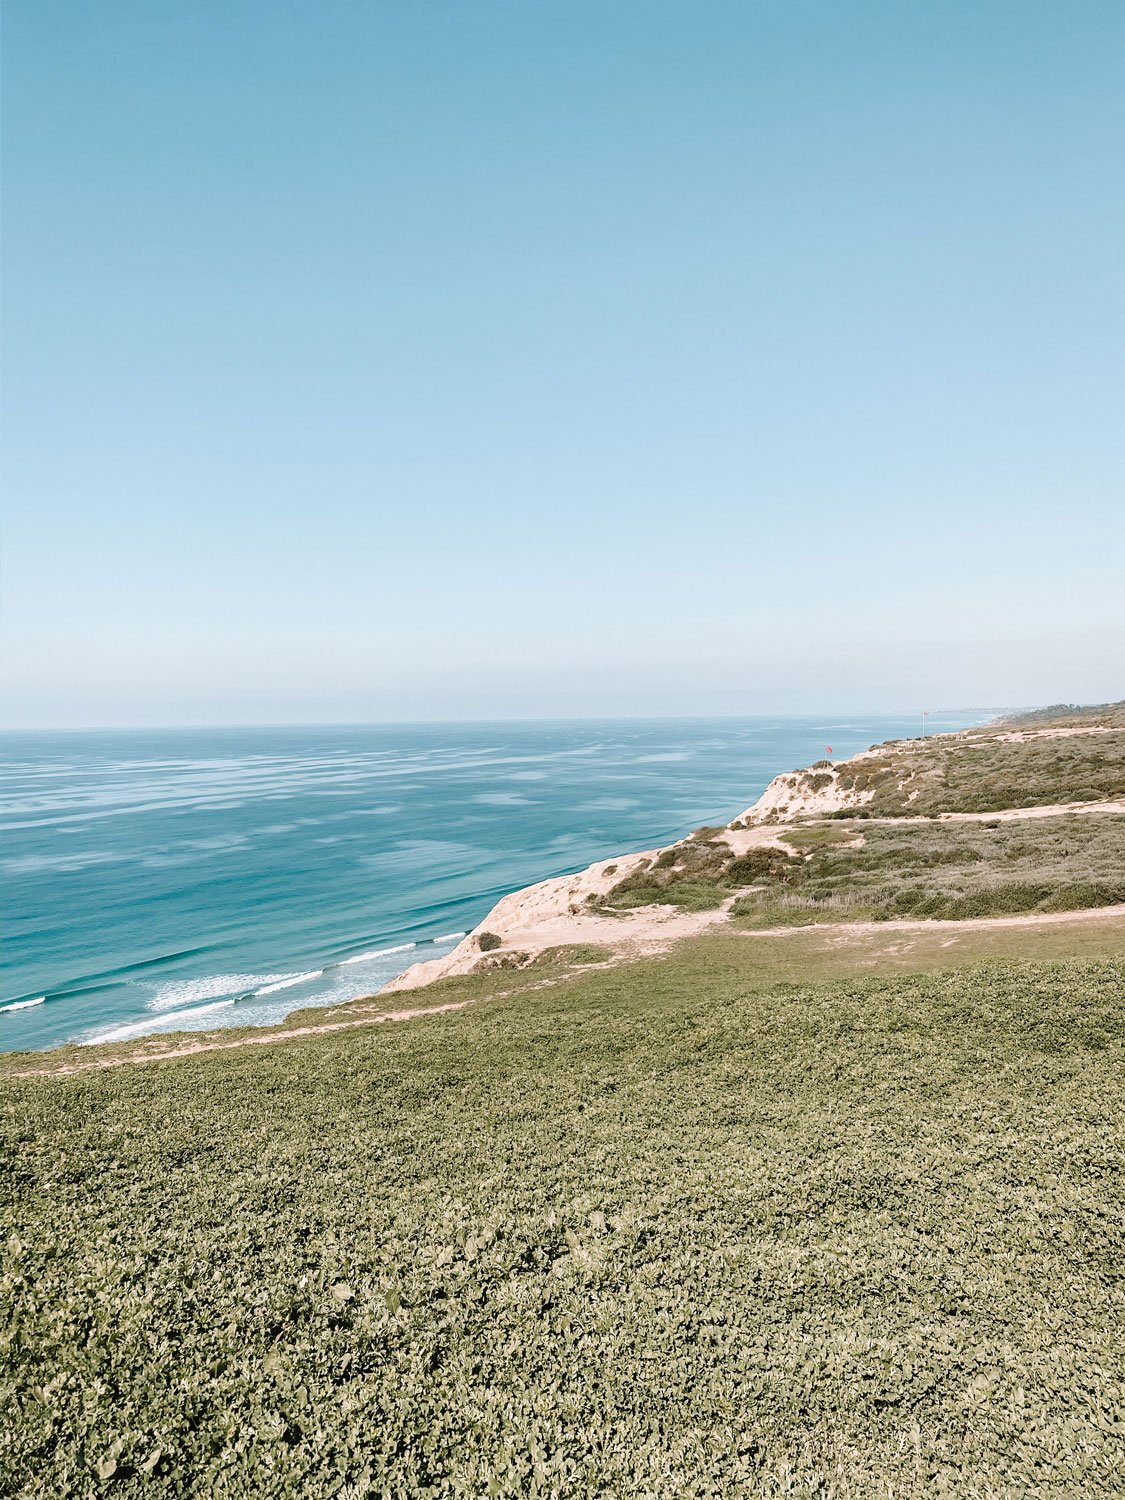 Torrey Pines natural preserve ocean view